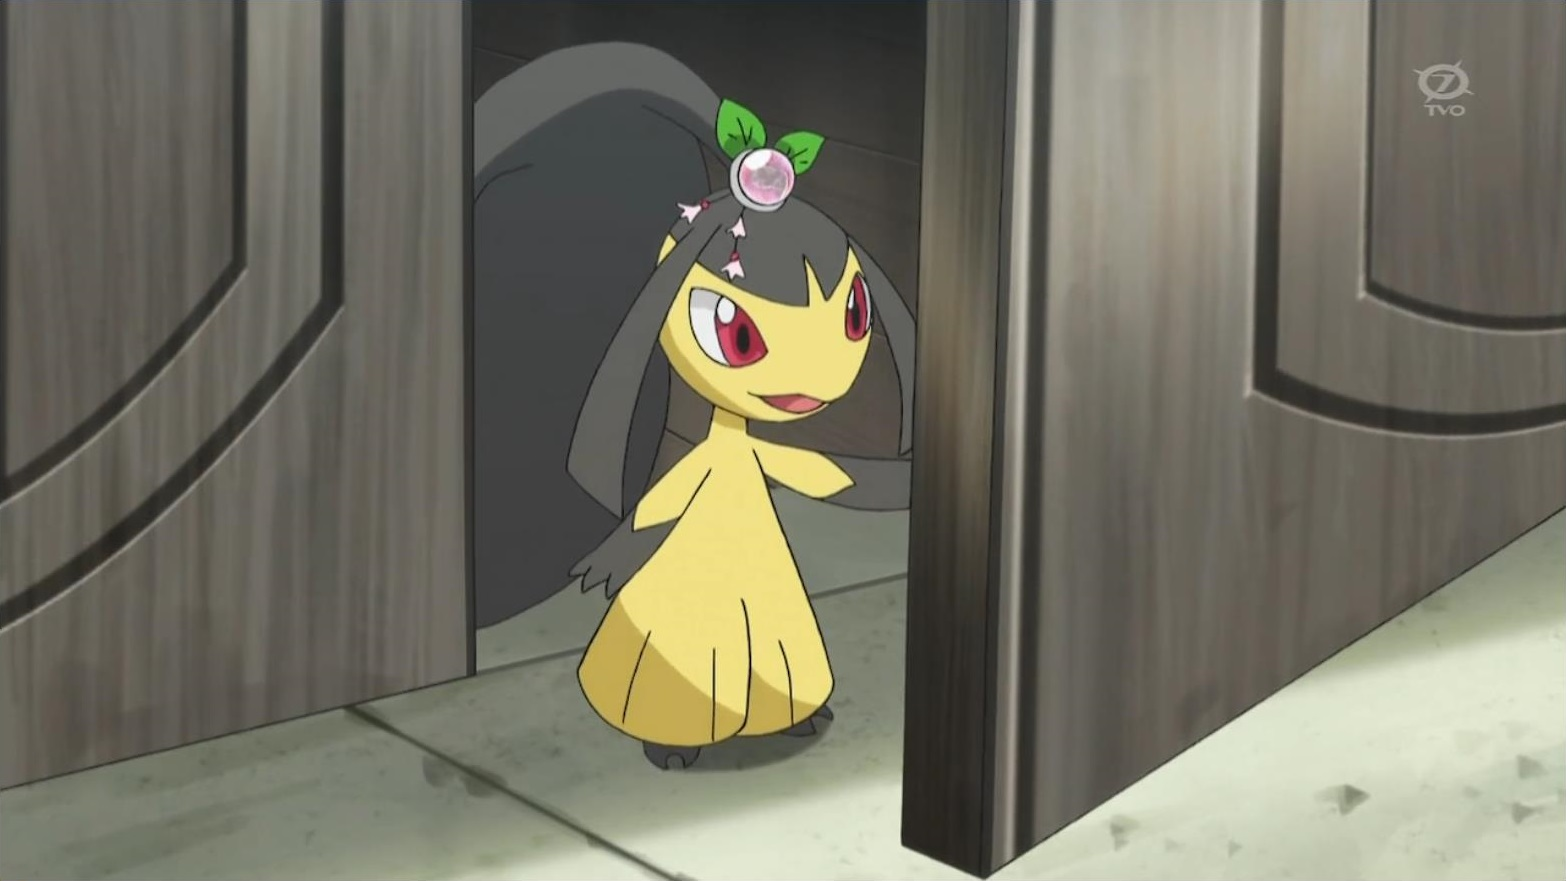 Mabel had a Mawile, who had the power to Mega Evolve. Mawile battled Korrina's Mega Lucario, and, later, Team Rocket as well.